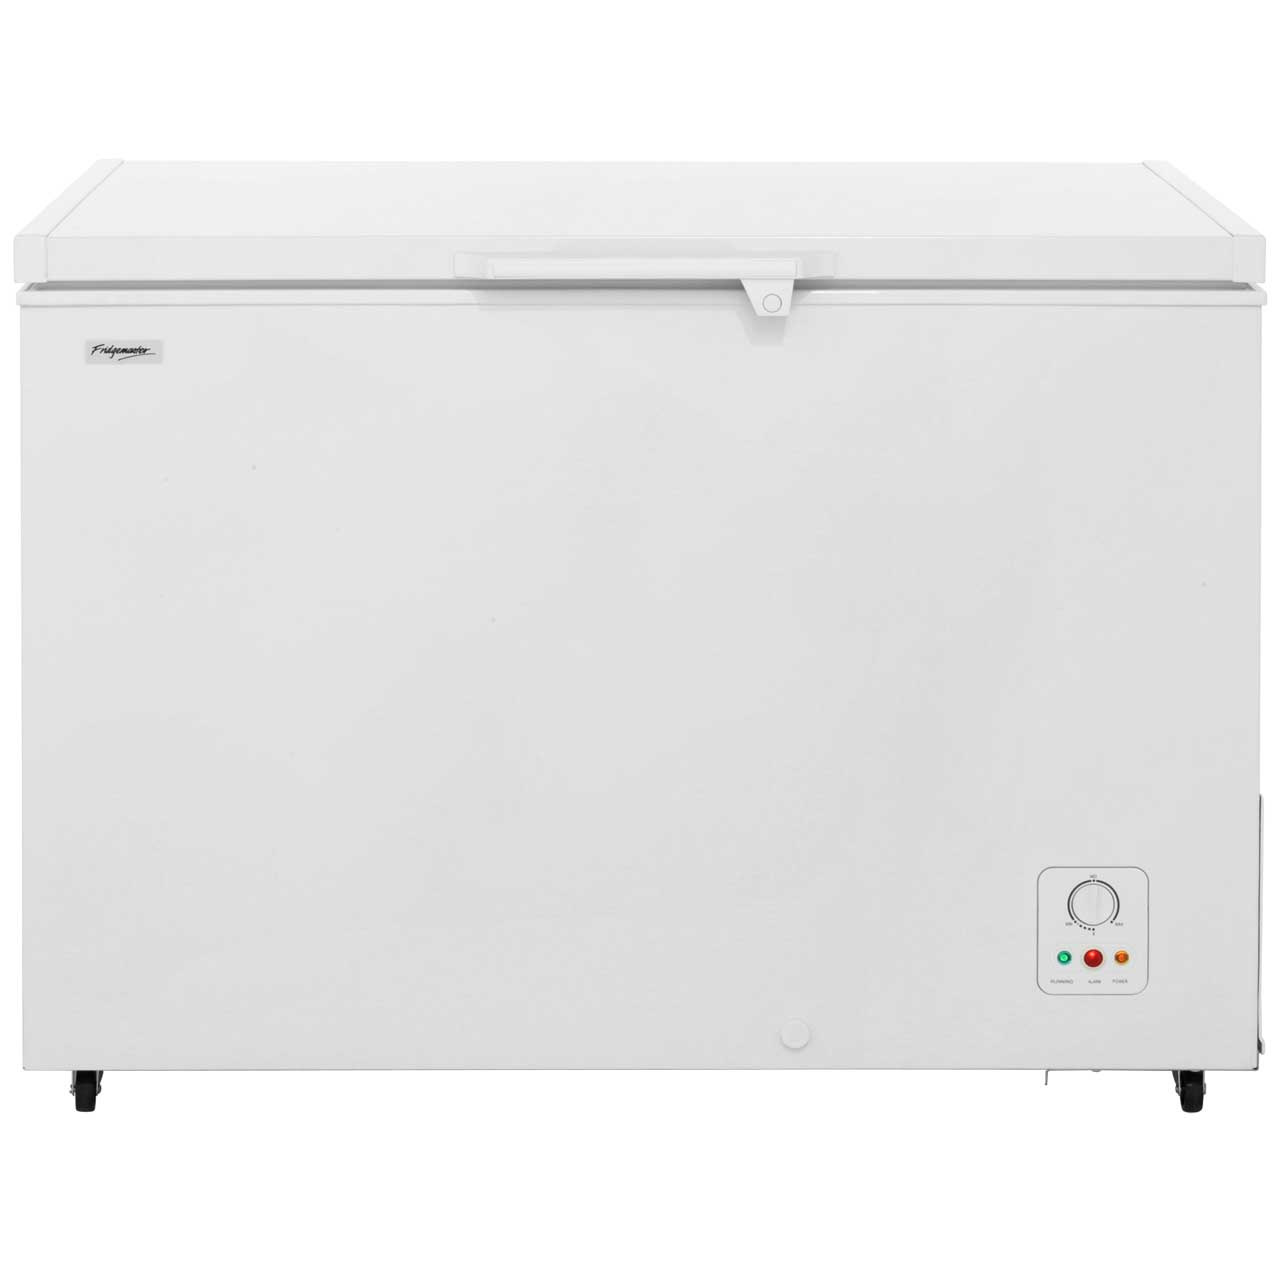 Fridgemaster MCF306 Free Standing Chest Freezer in White